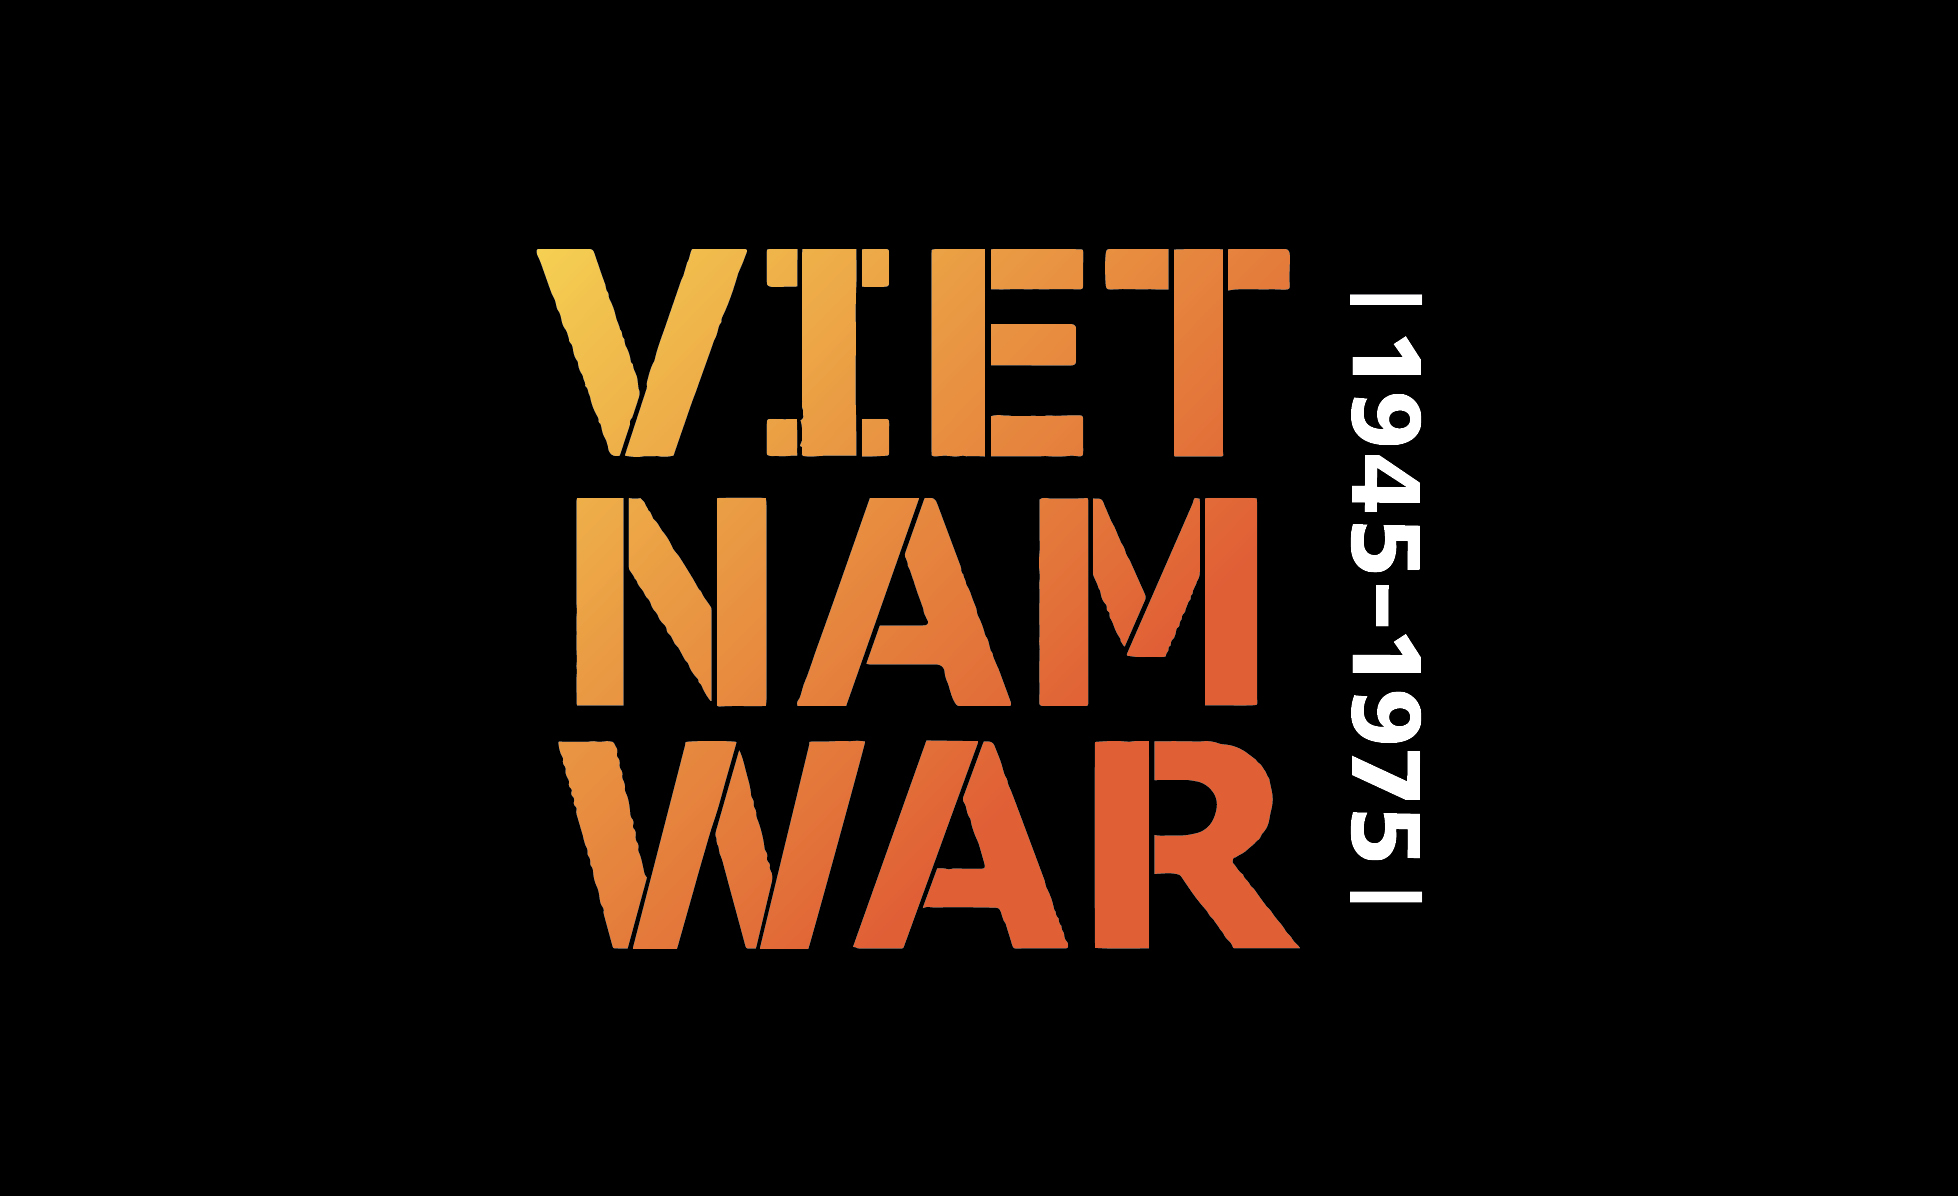 The Vietnam War: 1945-1975